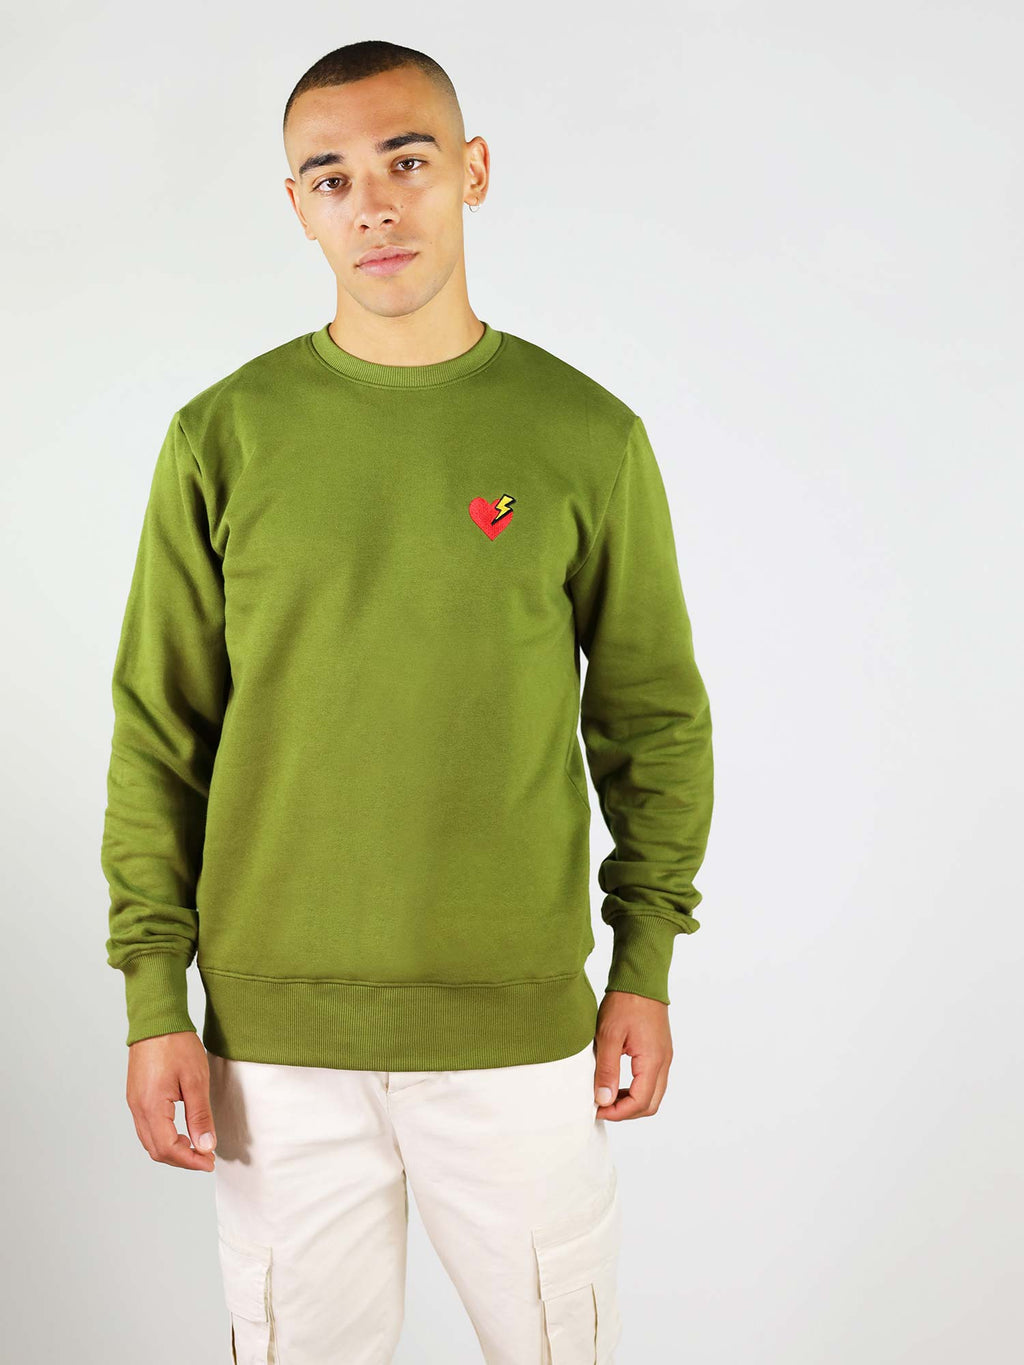 Green heart and thunder sweatshirt. Regular fit and soft touch and heart and thunder embroidery on the chest.